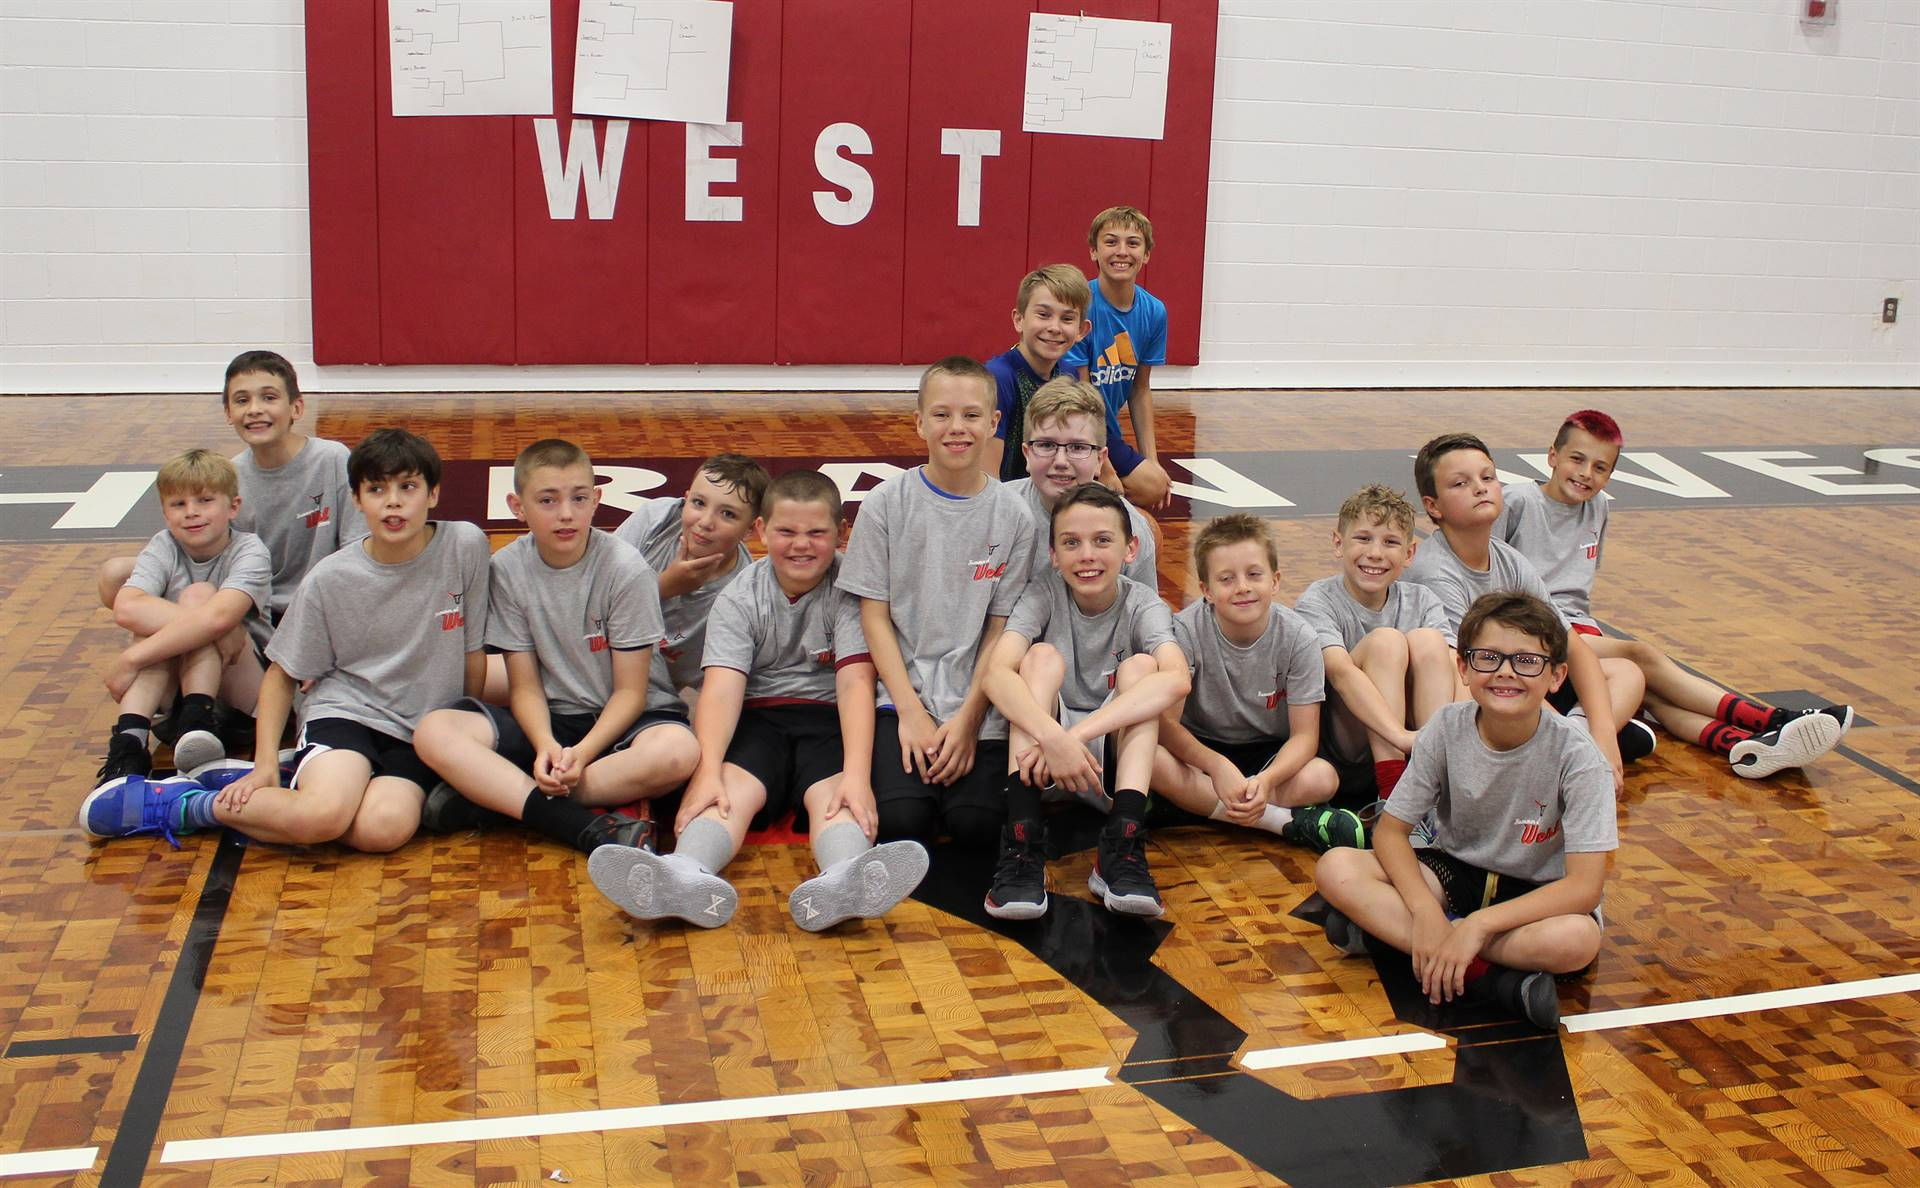 Boys-Basketball-Campers